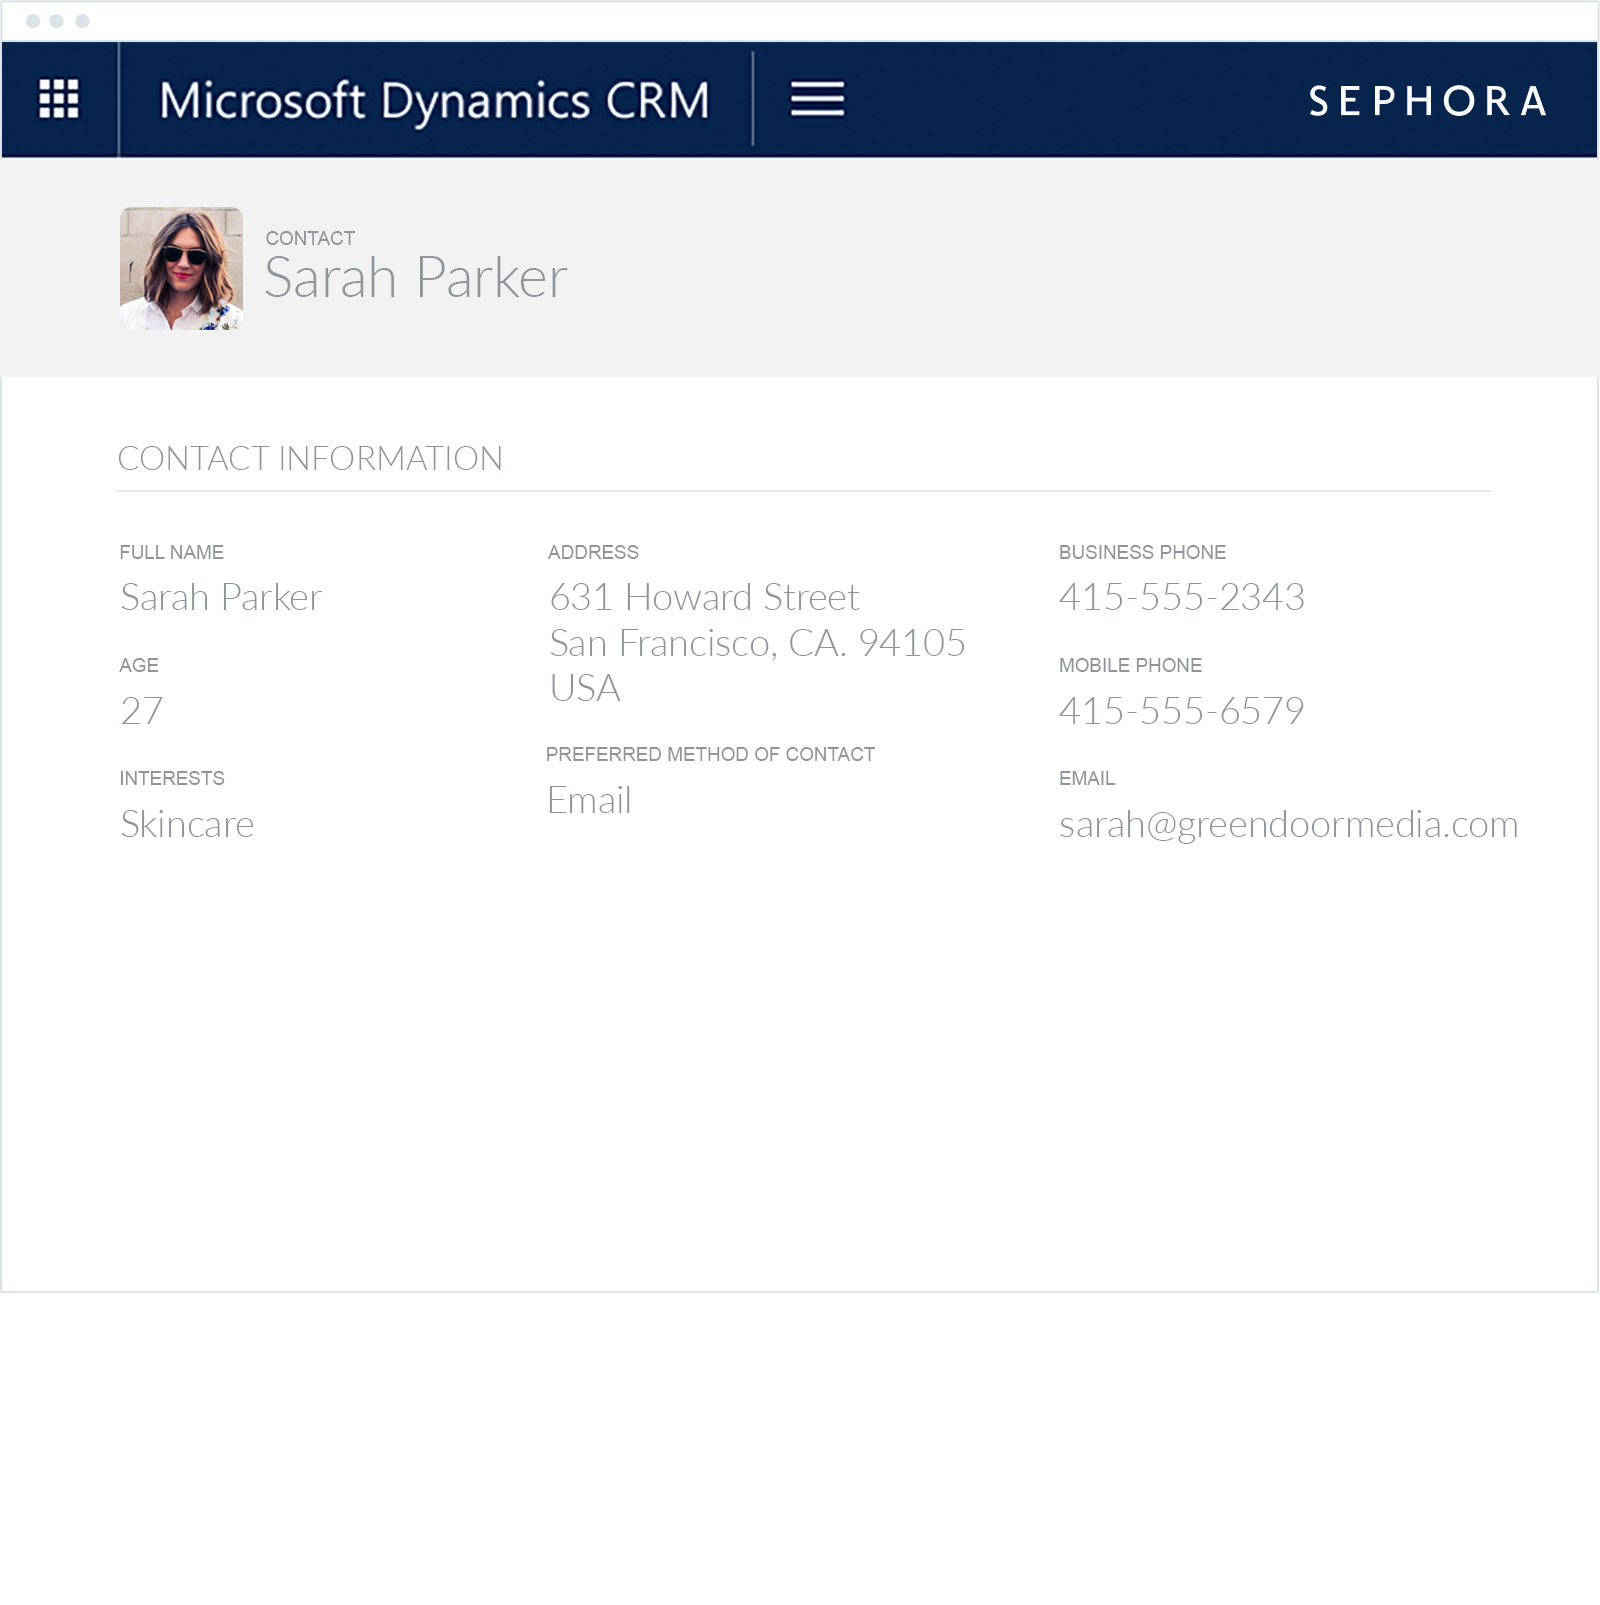 Microsoft Dynamics CRM email marketing integration